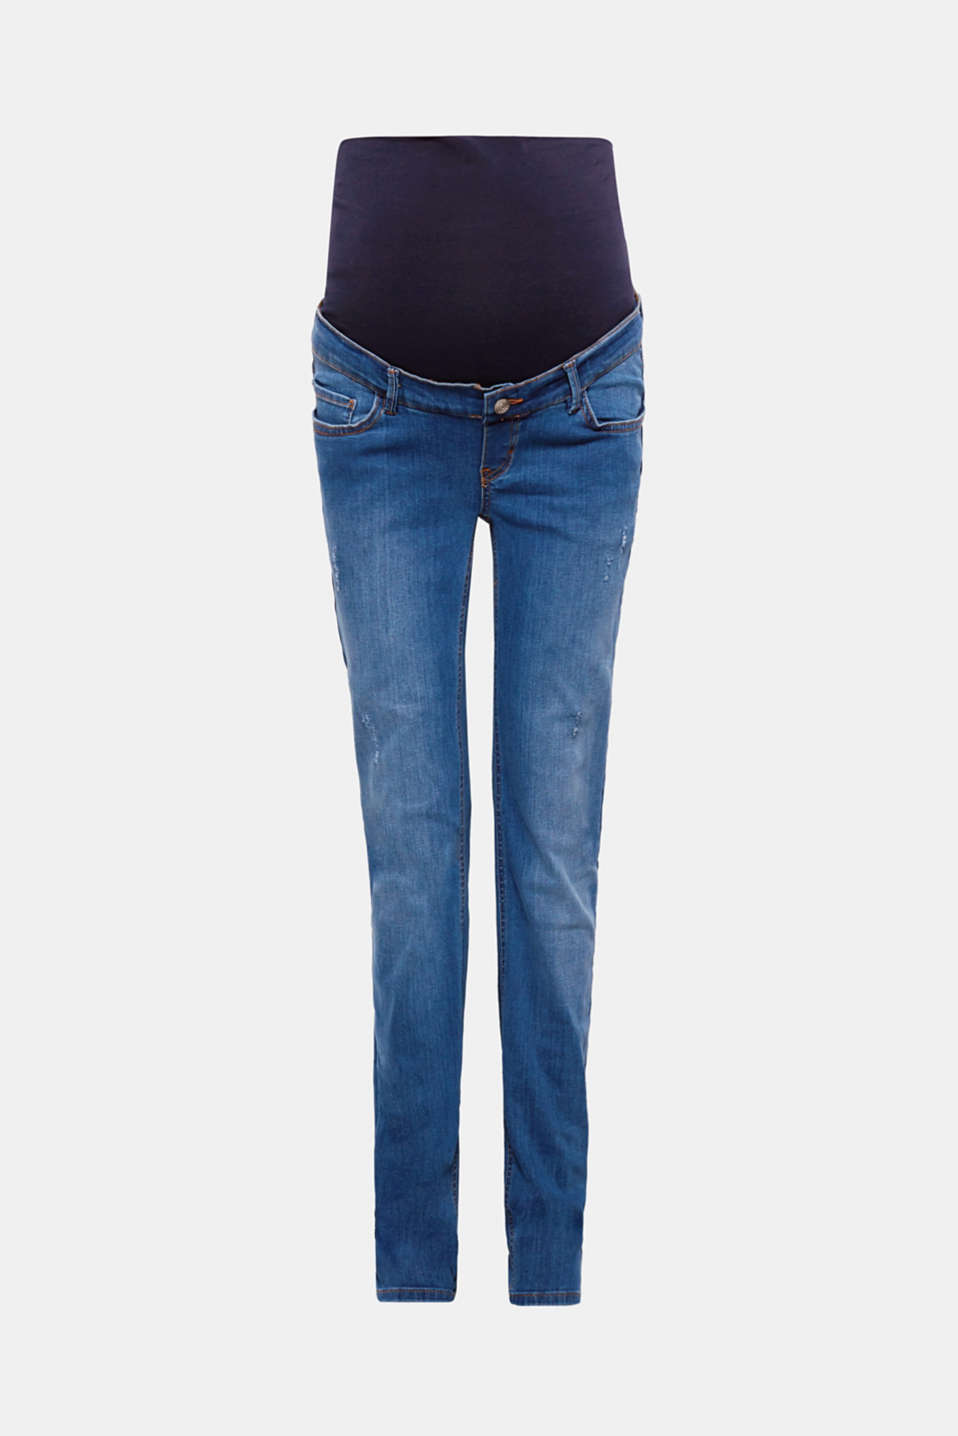 These stretch jeans score points with their casual vintage effects, cool garment wash and timeless, straight cut!